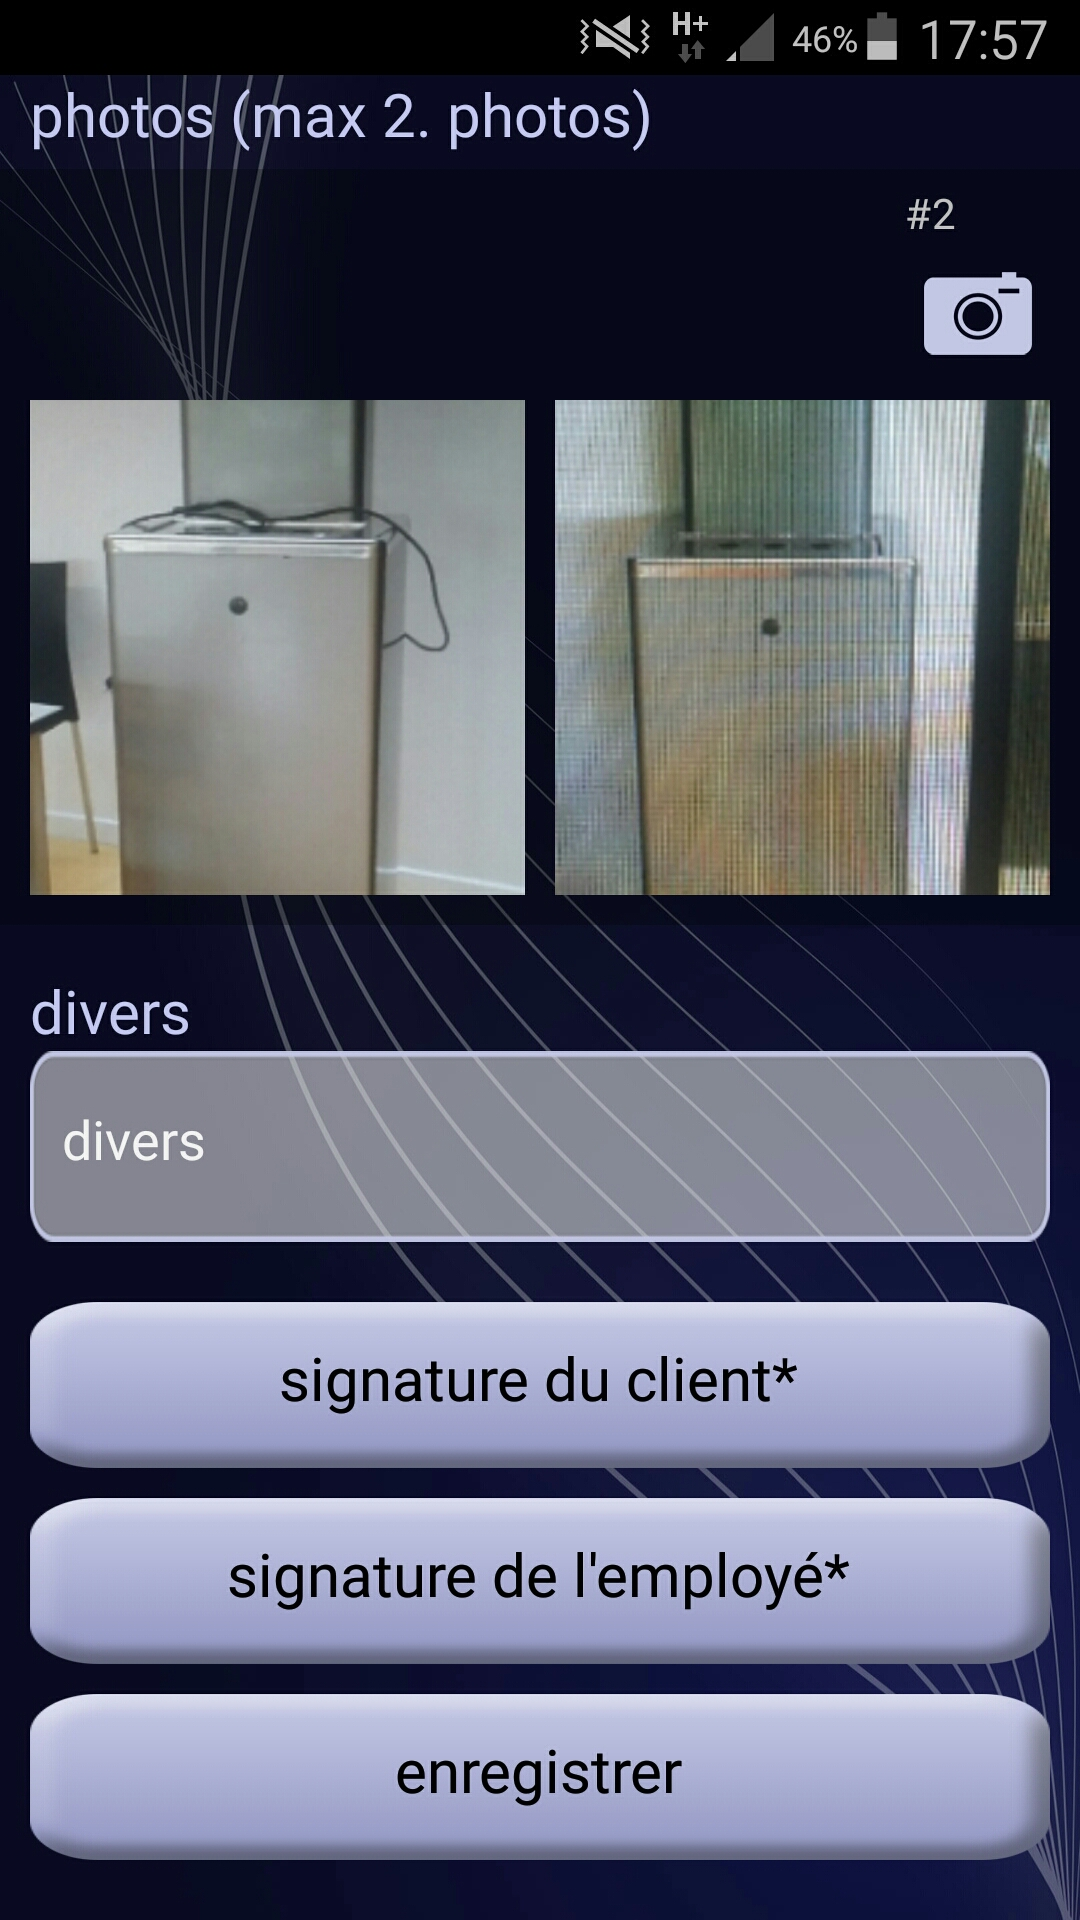 ginstr_app_waterCoolerMaintenance_FR_4